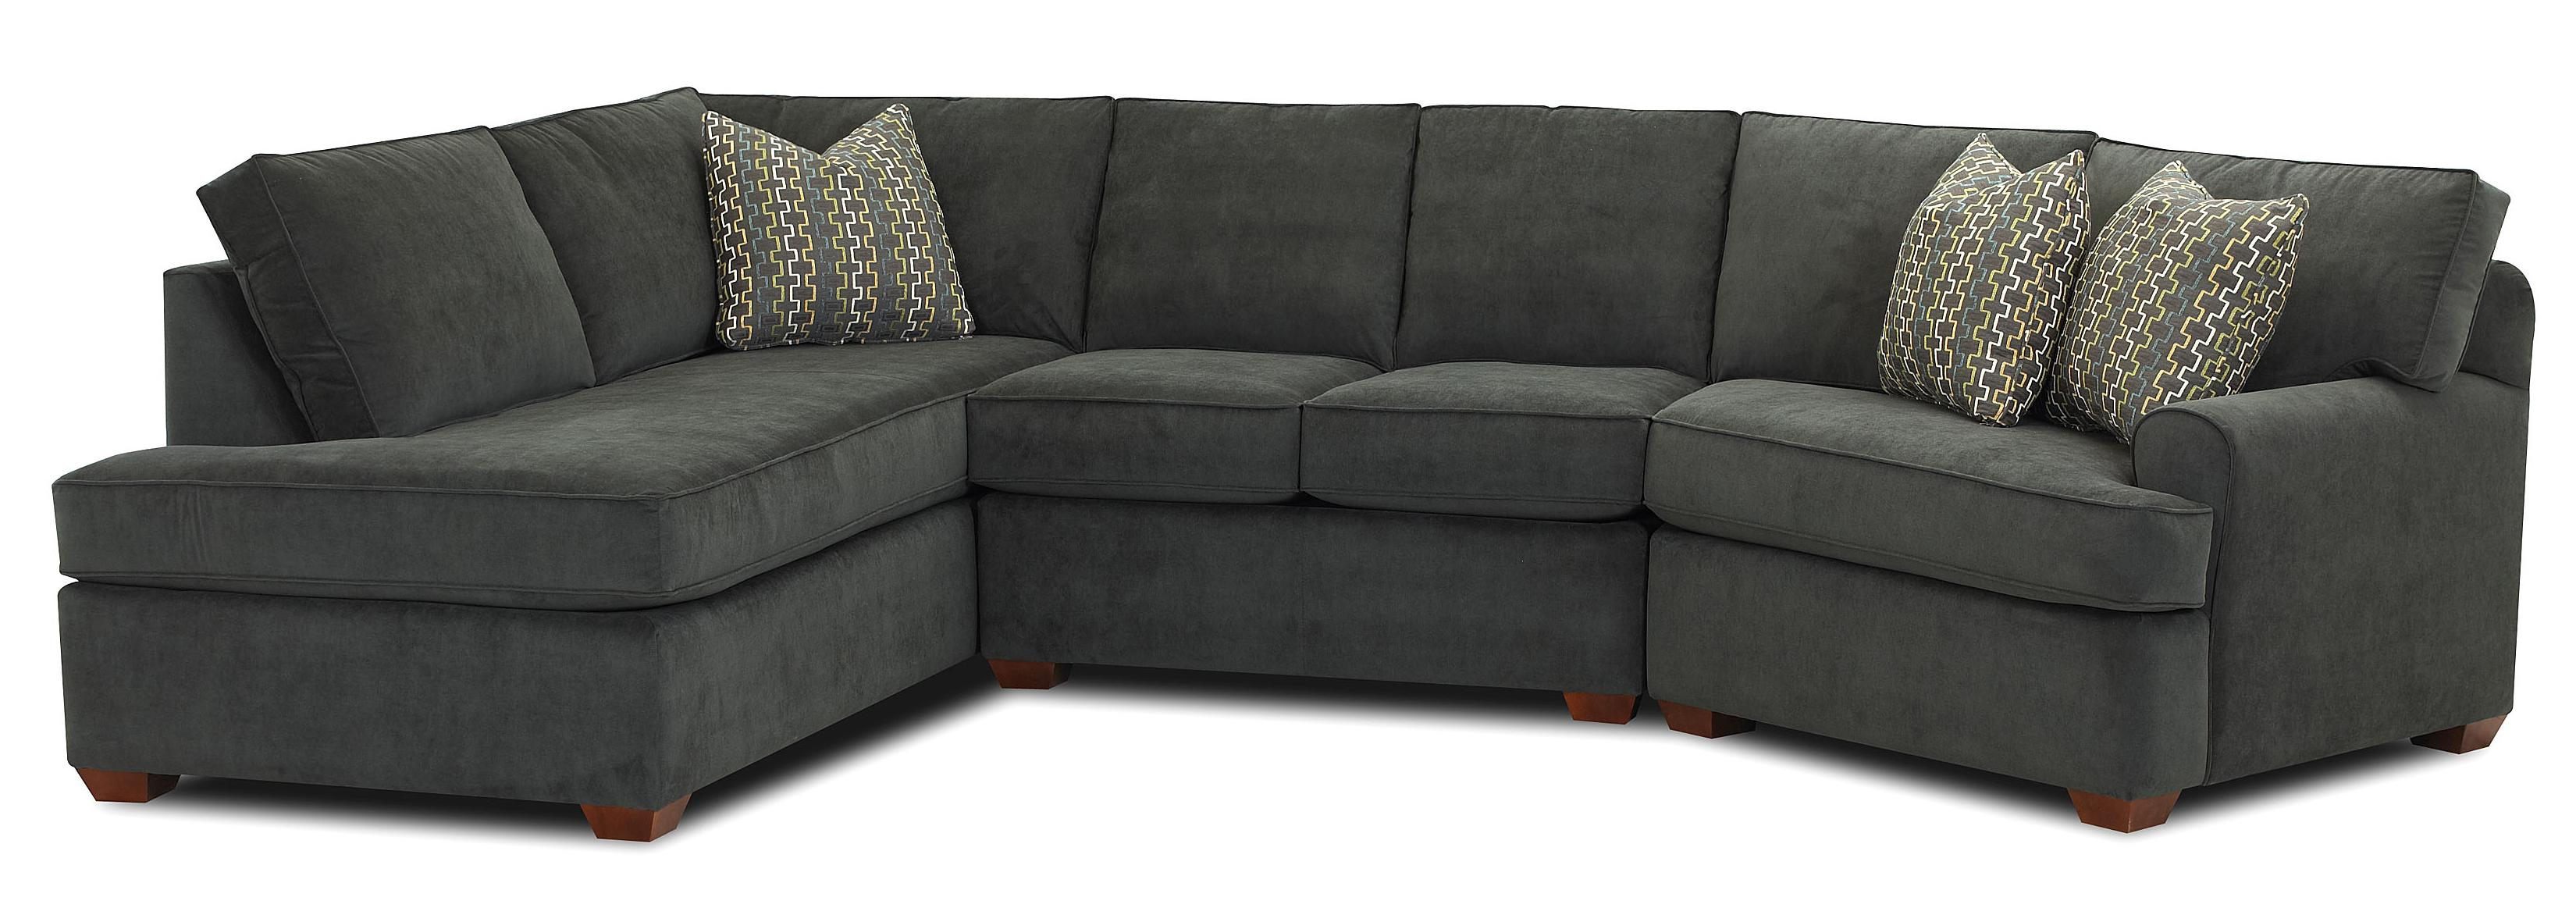 Sectional Sofa with LeftFacing Sofa Chaise by Klaussner